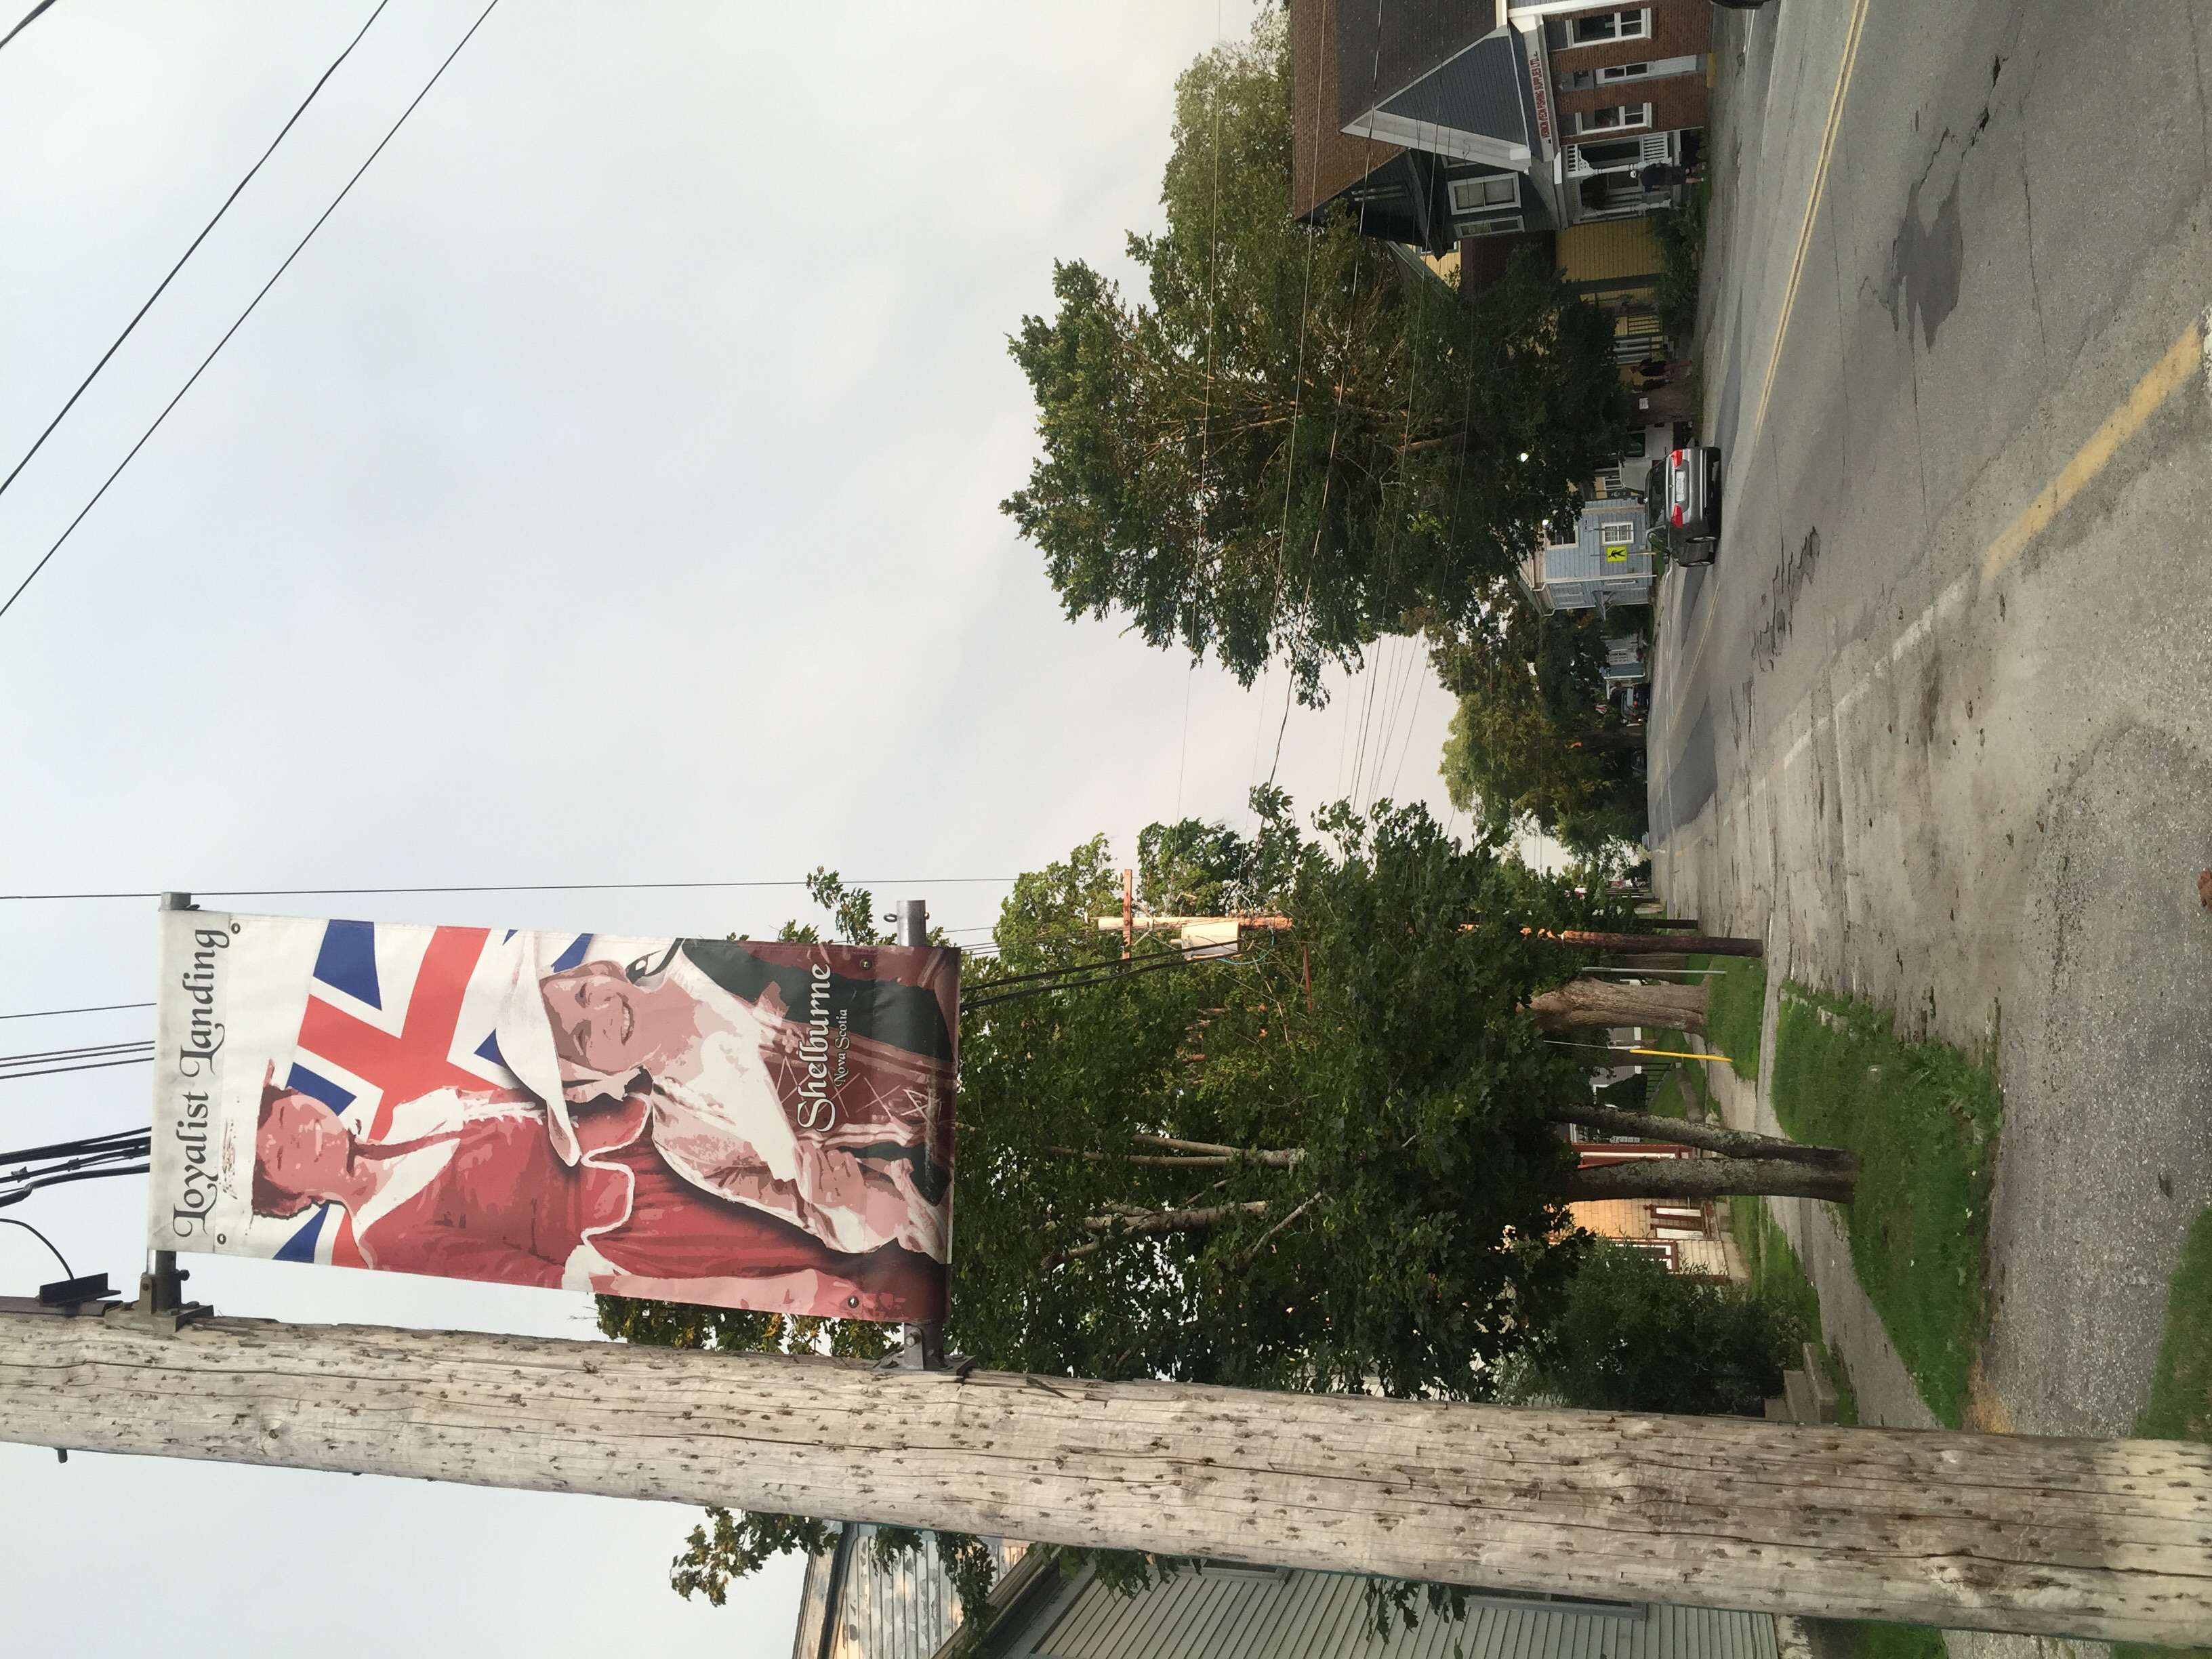 Shelburne was founded by English loyalists during the Revolution, and the town is quite proud of it. There are more Union Jacks flying here than maple leaves.